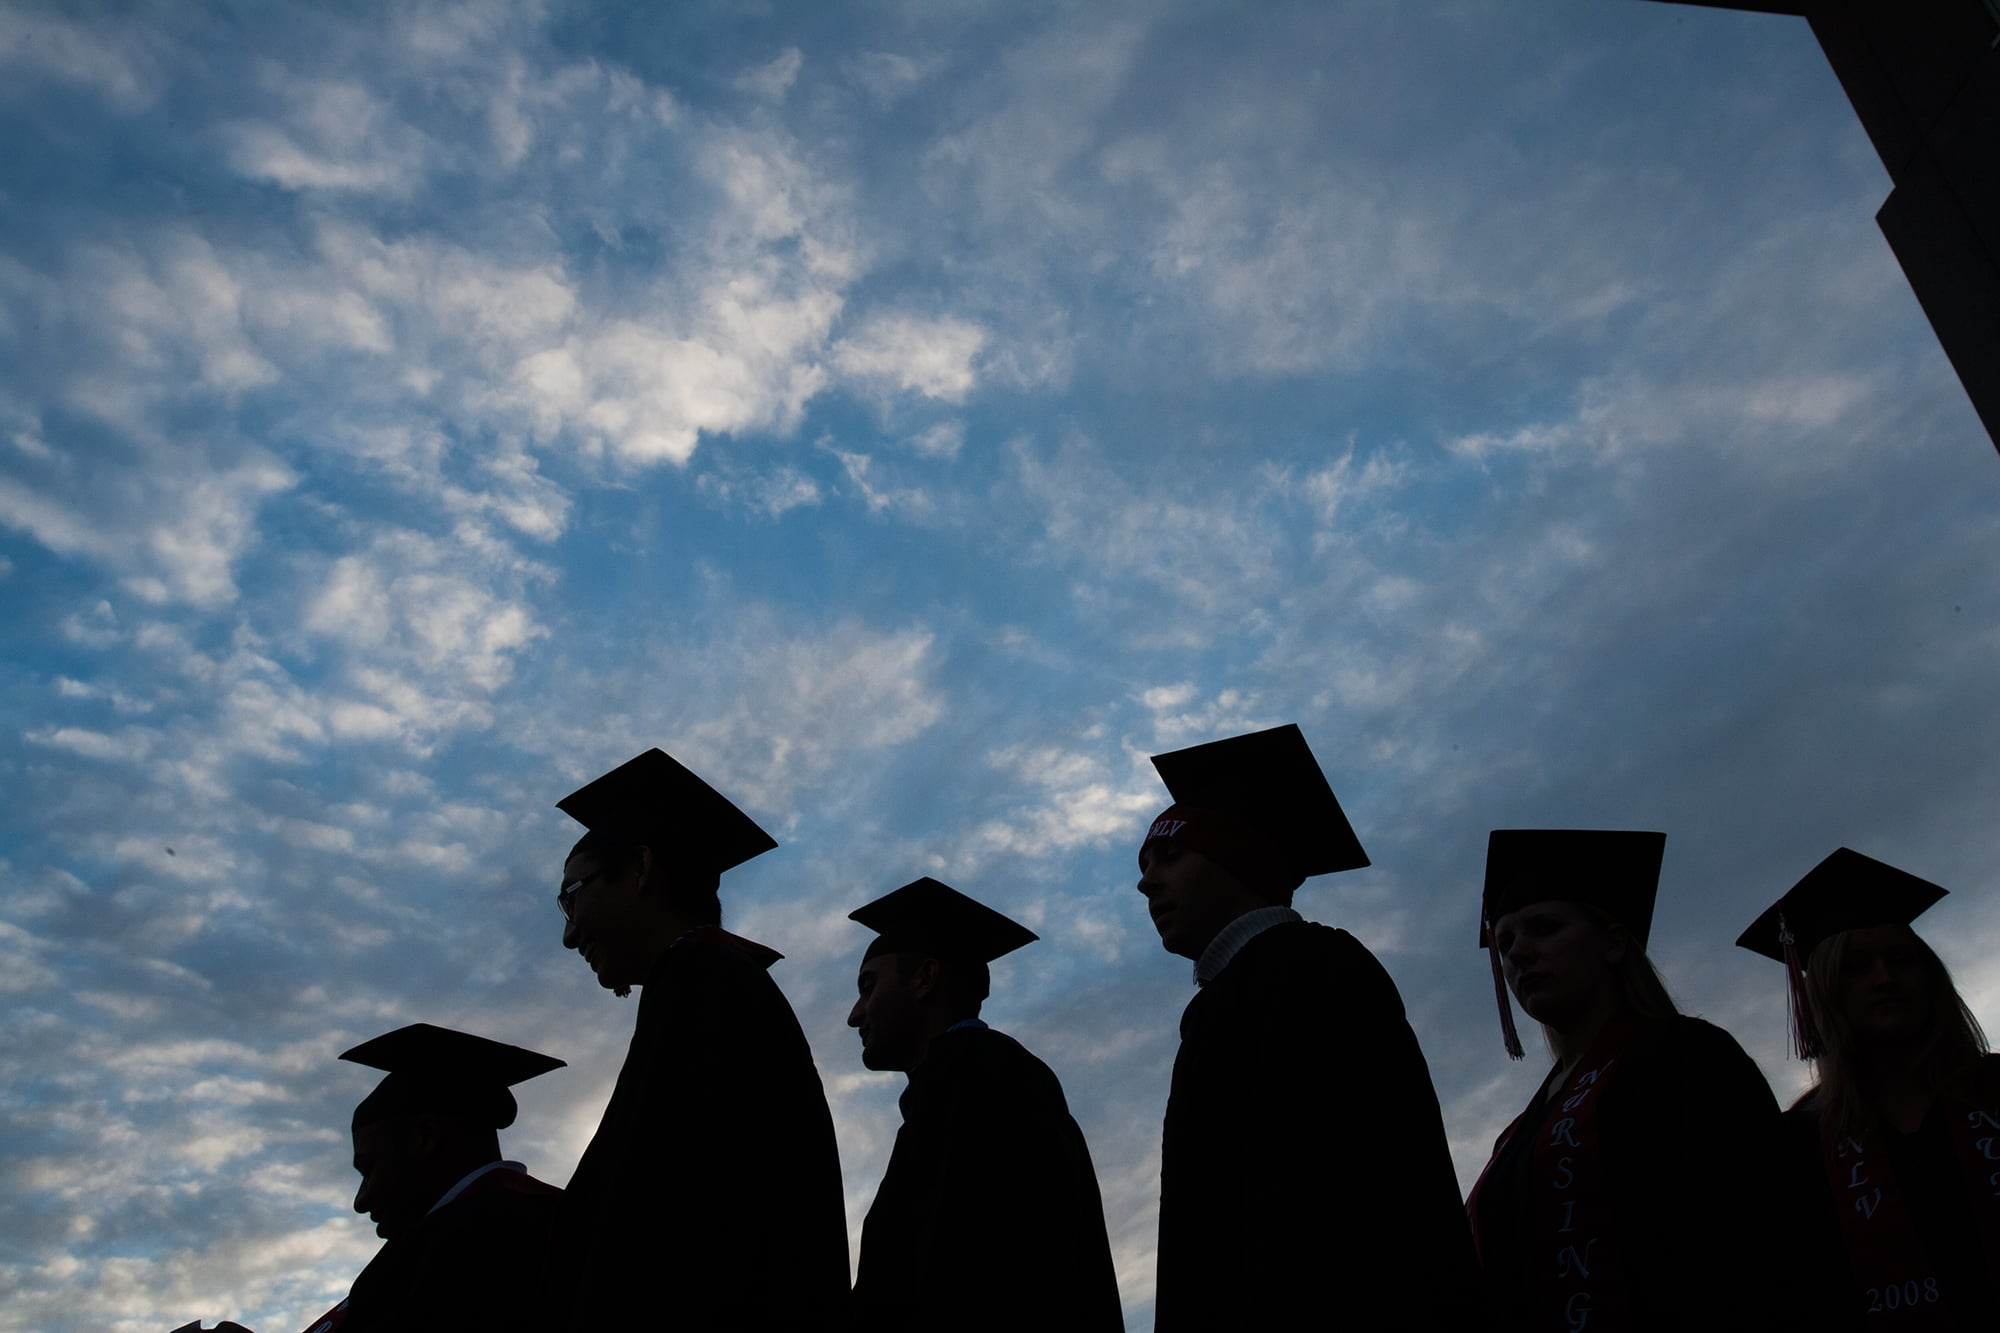 Unlv Cap And Gown - Sqqps.com